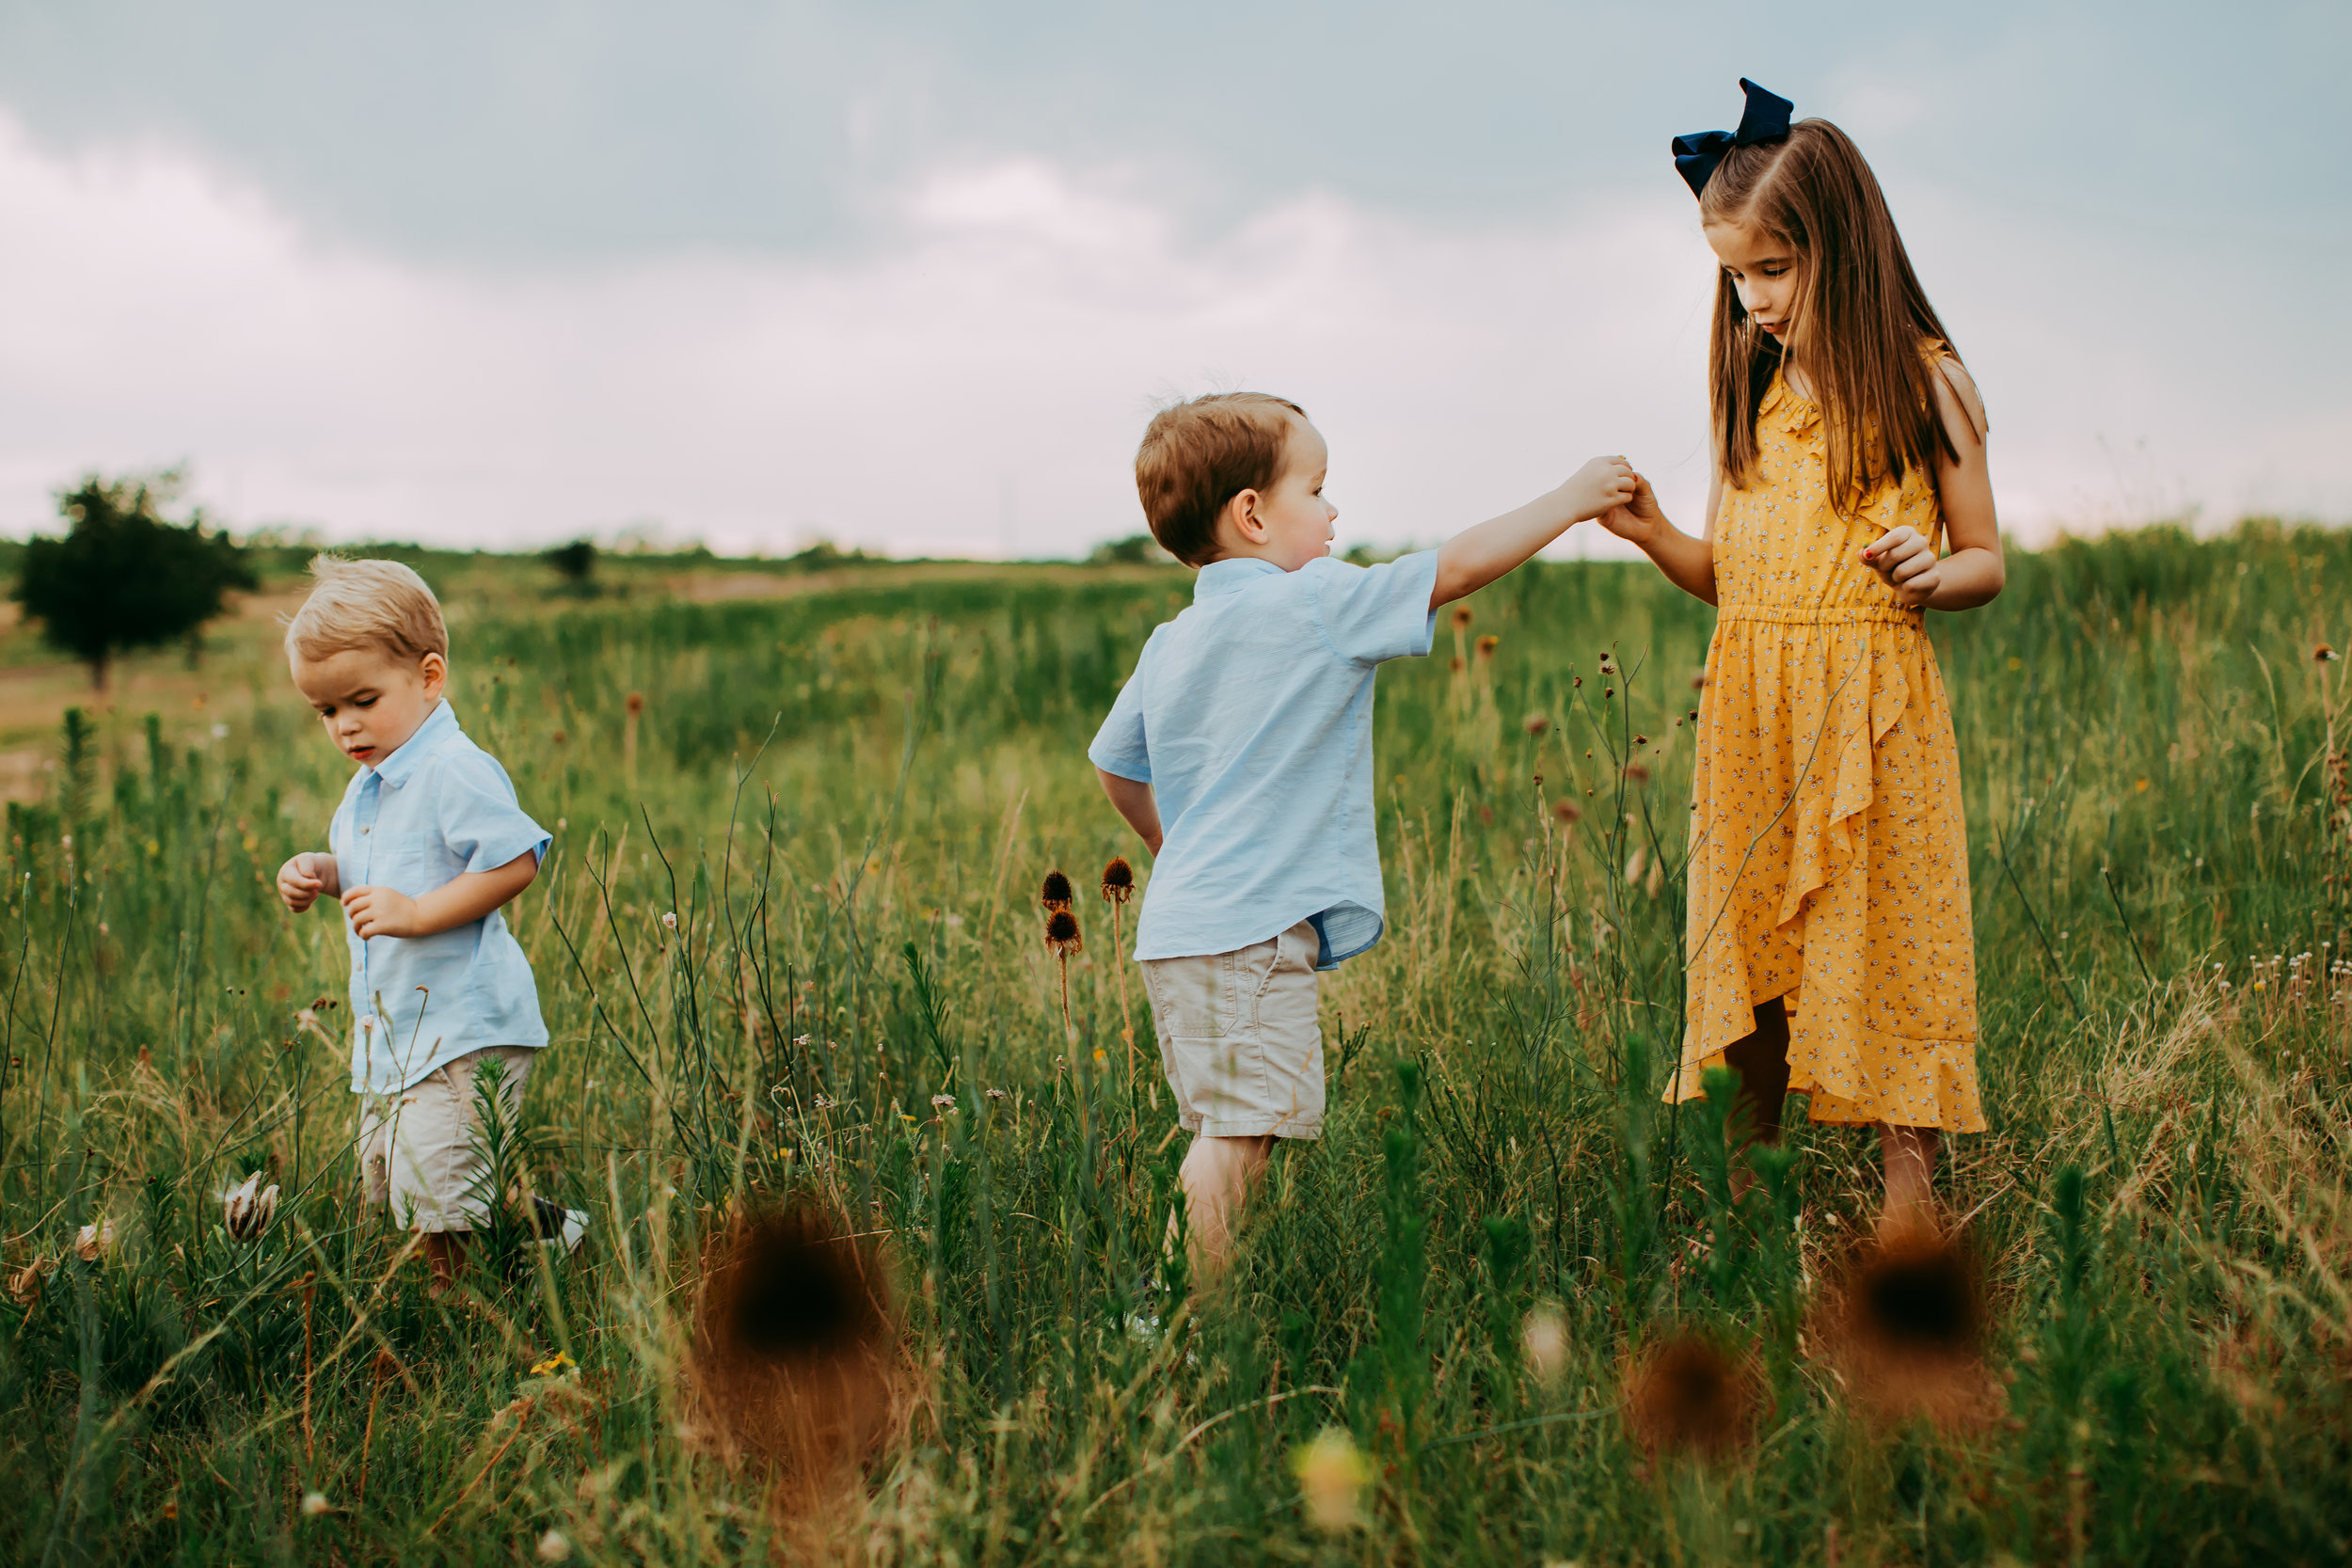 Siblings playing together and picking flowers during family photo shoot #tealawardphotography #texasfamilyphotographer #amarillophotographer #amarillofamilyphotographer #lifestylephotography #emotionalphotography #familyphotosoot #family #lovingsiblings #purejoy #familyphotos #familyphotographer #greatoutdoors #naturalfamilyinteraction